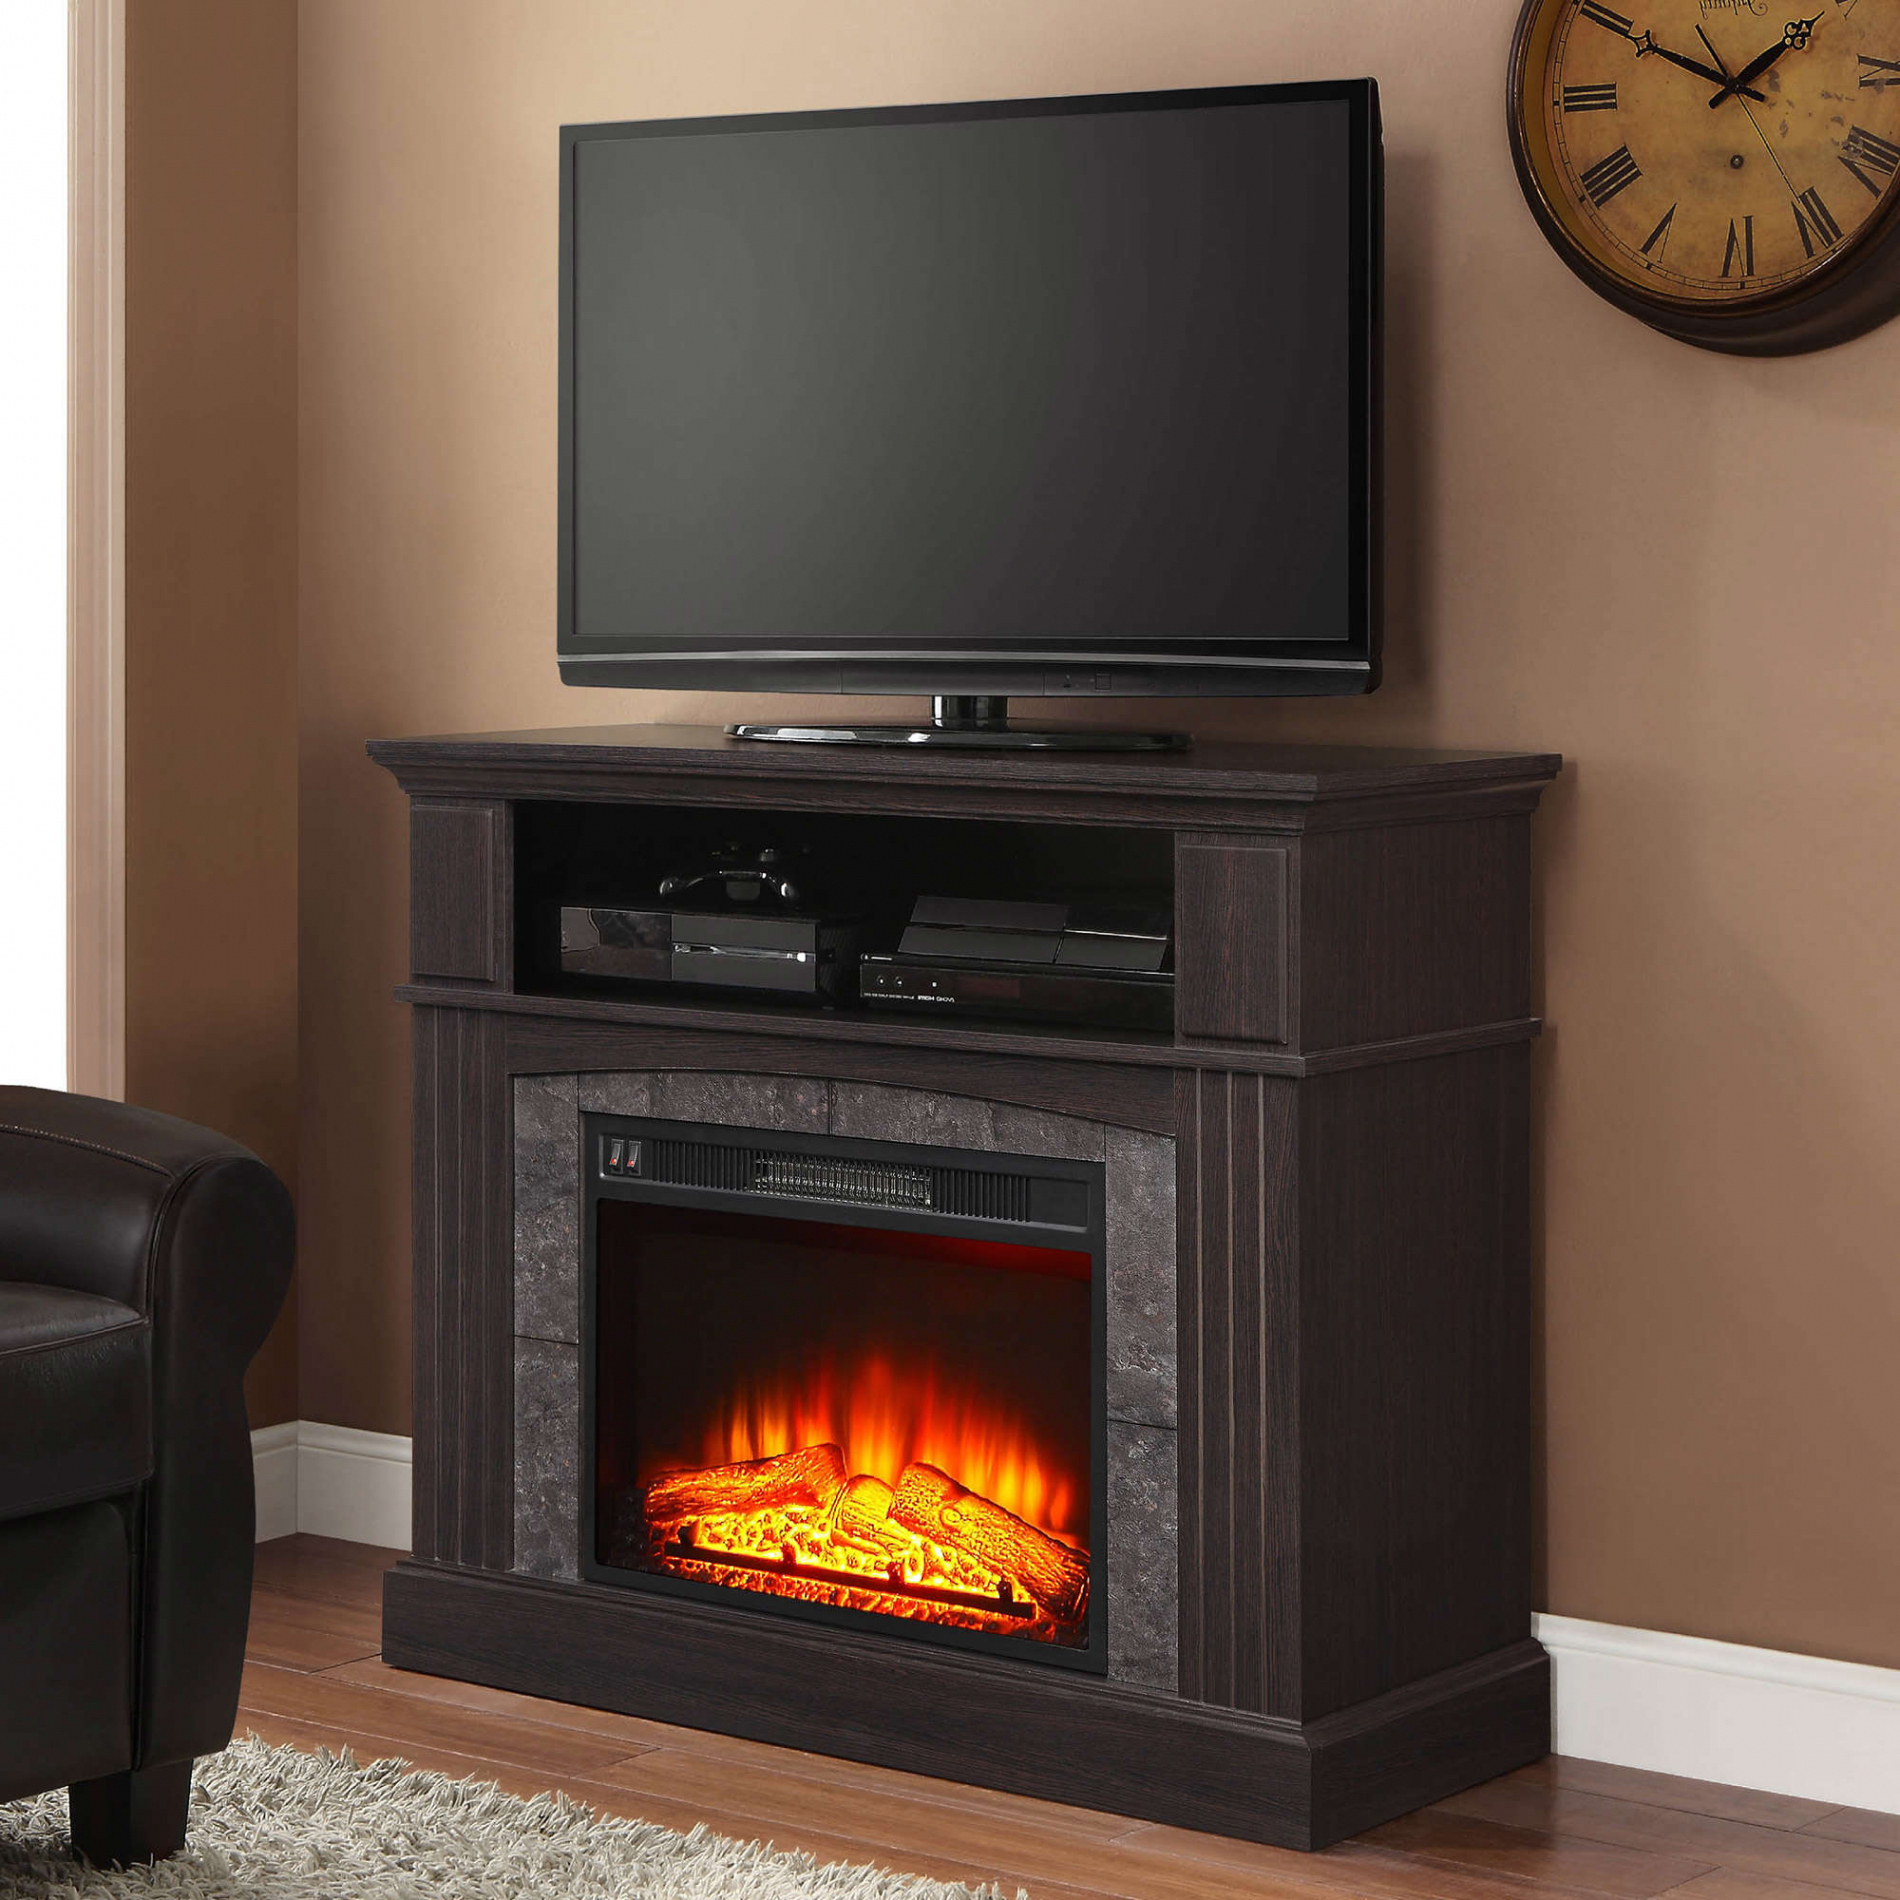 Unique Whalen Media Fireplace Console   Ch20 Webmaster Within Whalen Shelf Tv Stands With Floater Mount In Weathered Dark Pine Finish (View 14 of 20)